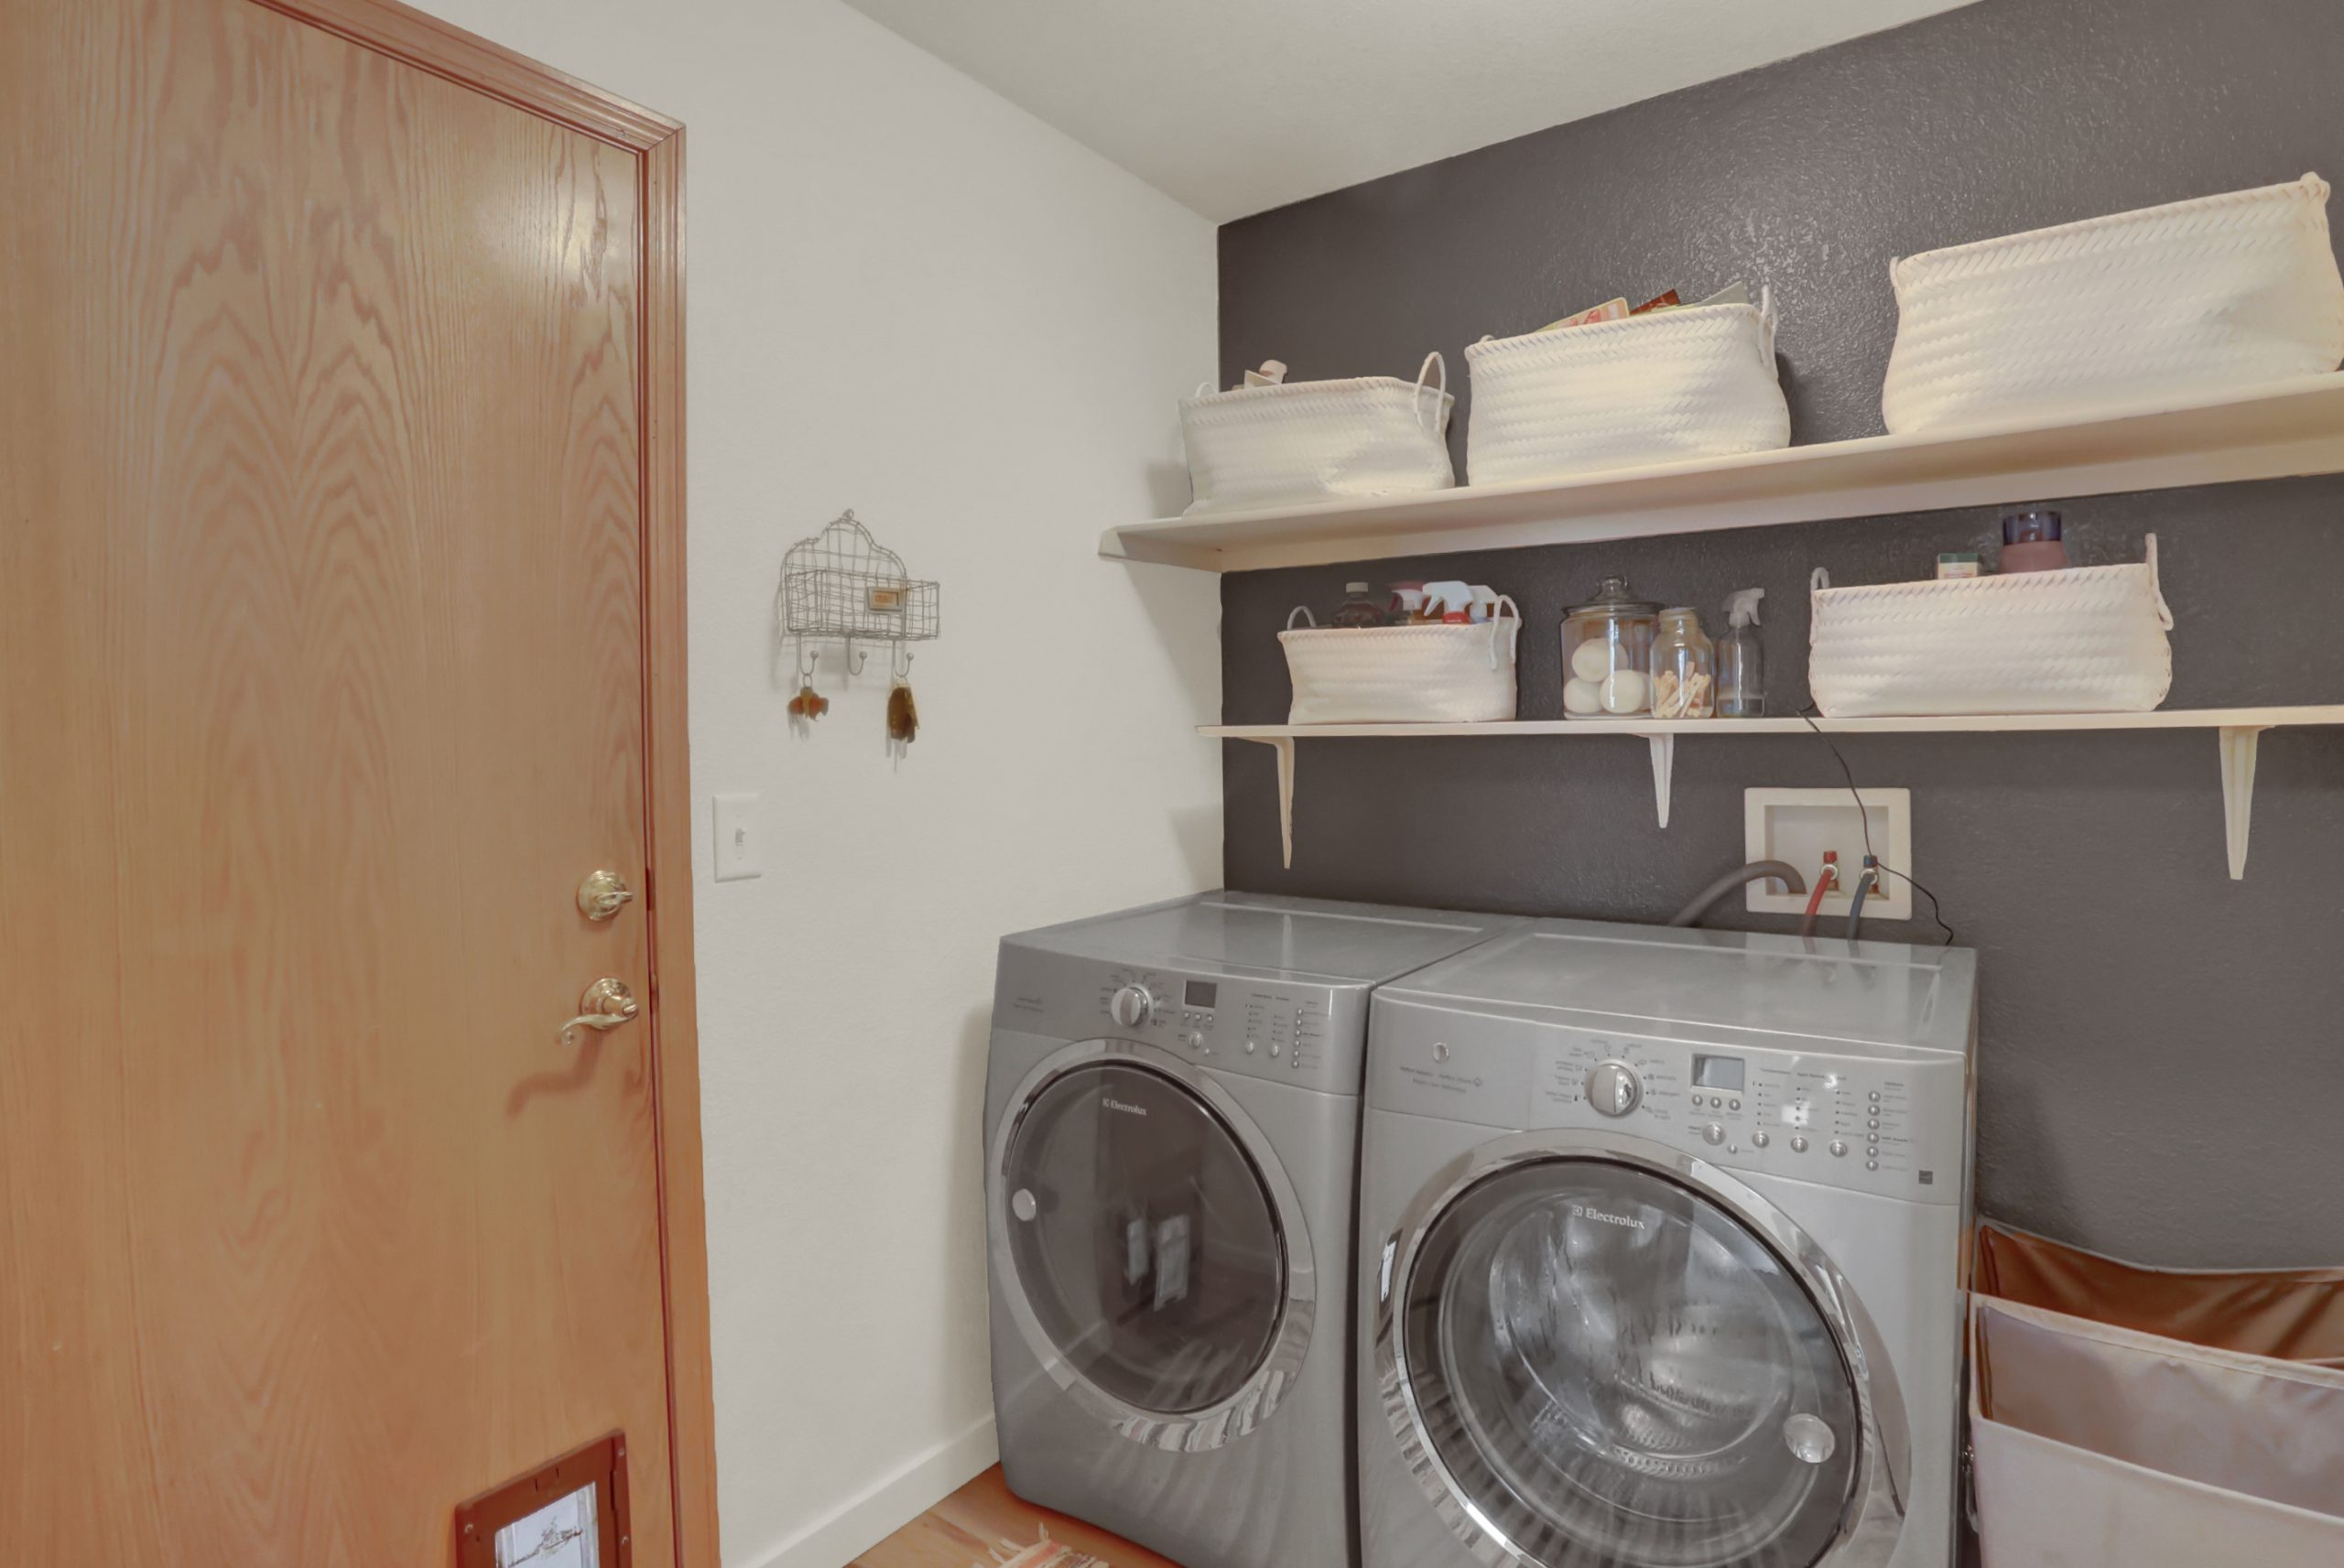 REAL ESTATE LISTING: 10502 Falcon St Firestone Laundry Room